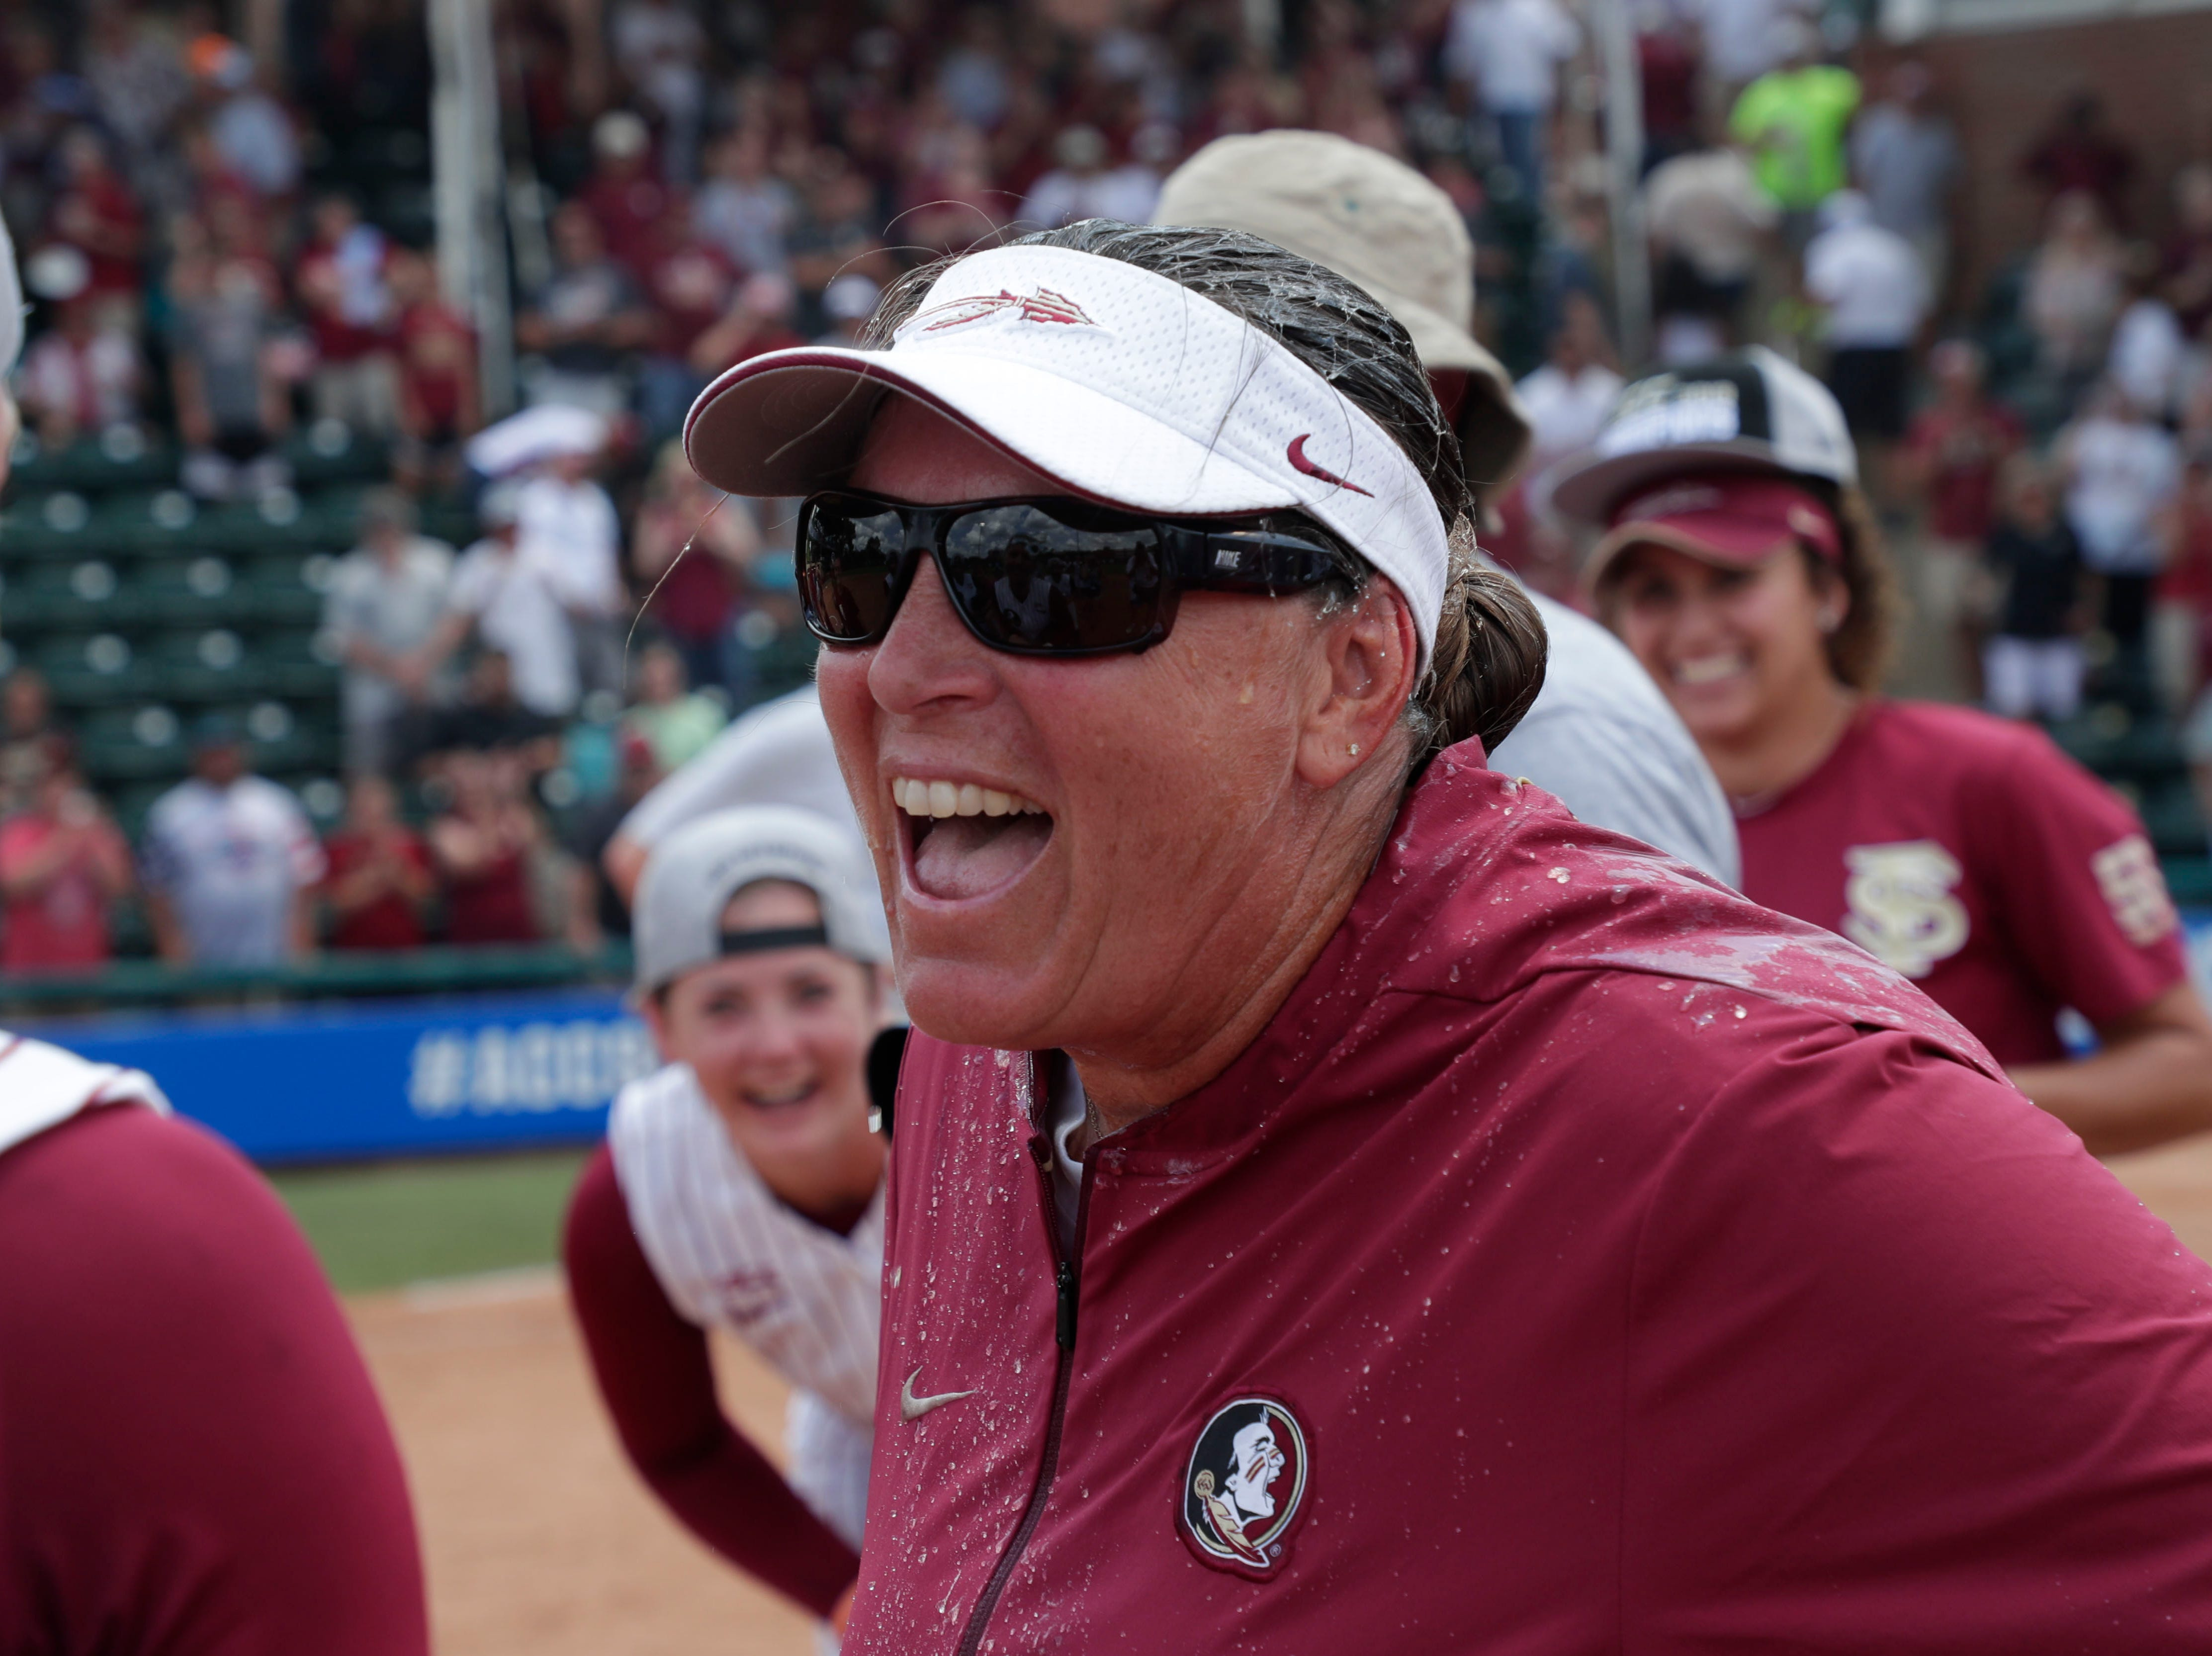 Florida State Seminoles head coach celebrates her team's big win with the players. The Florida State Seminoles celebrate their victory over the UNC Tar Heels for the ACC Softball Championship title Saturday, May 11, 2019.